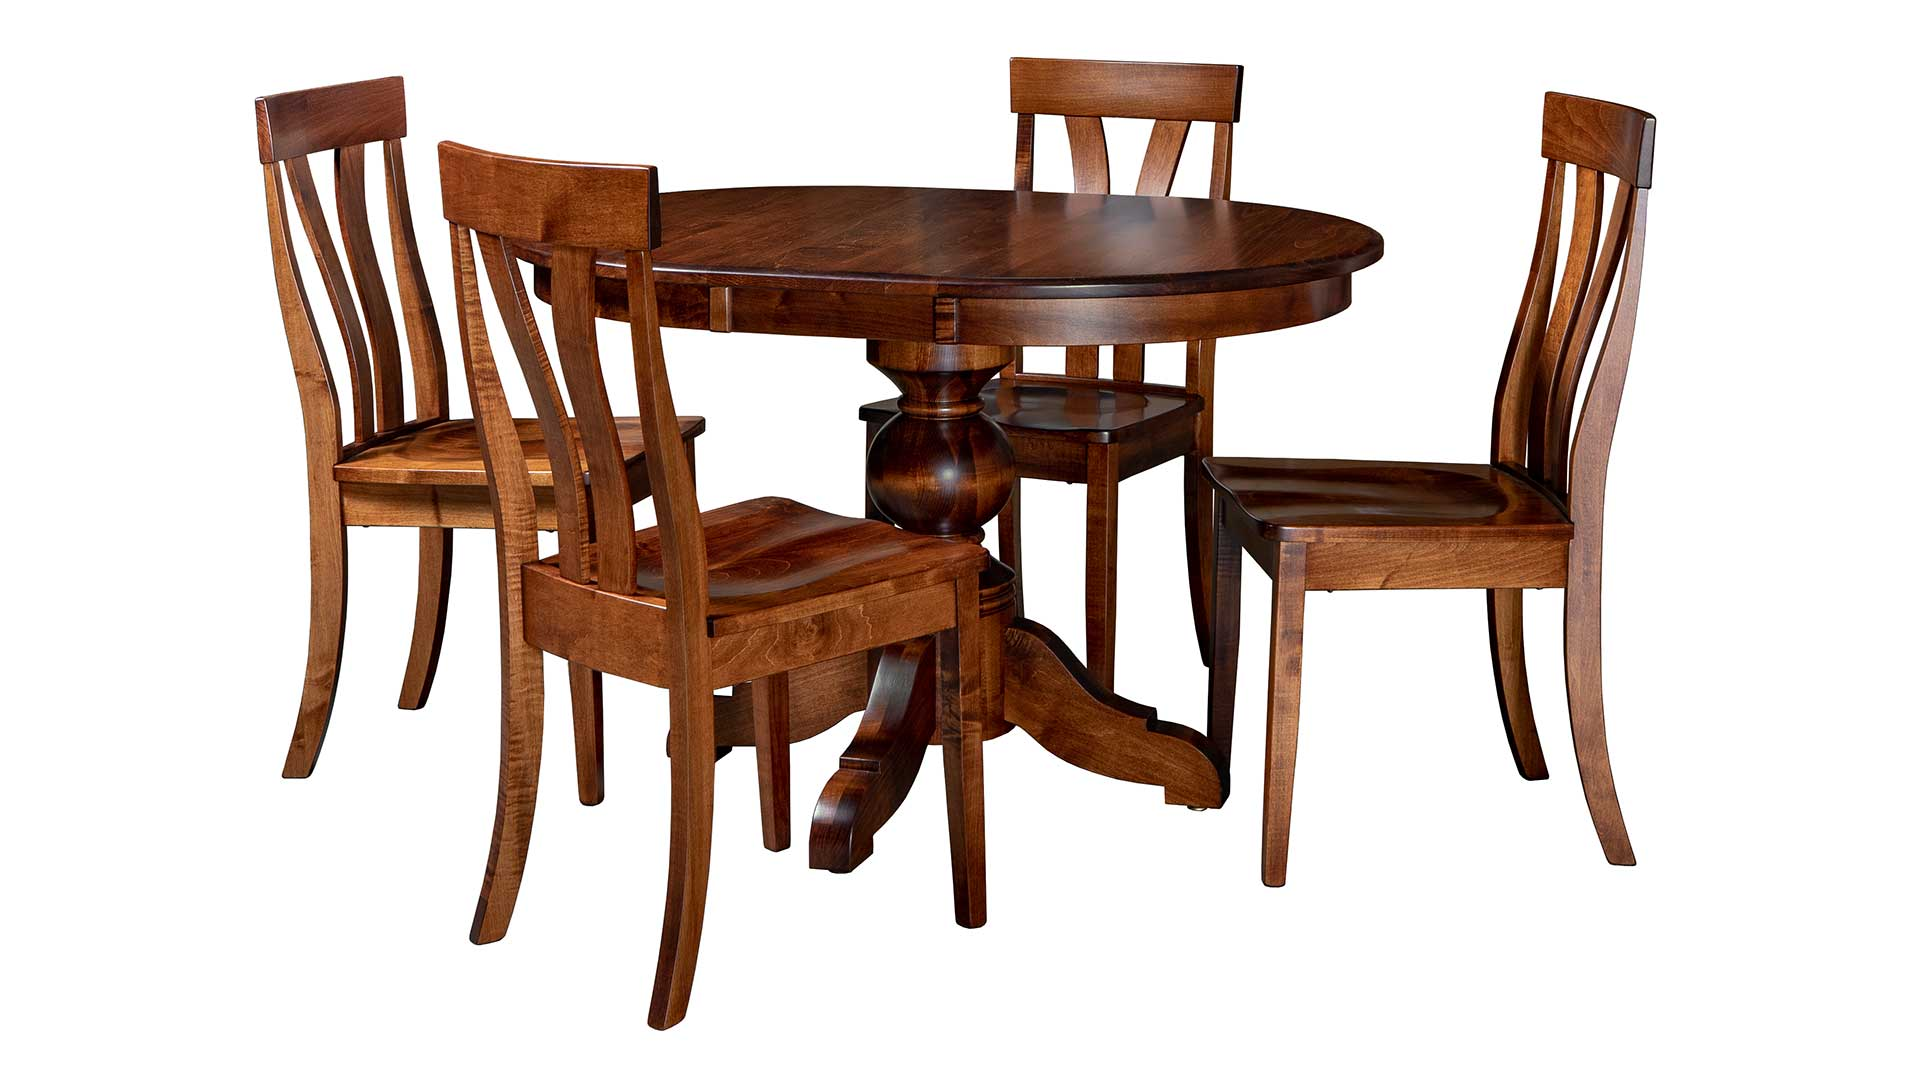 Amish Carter Table Image